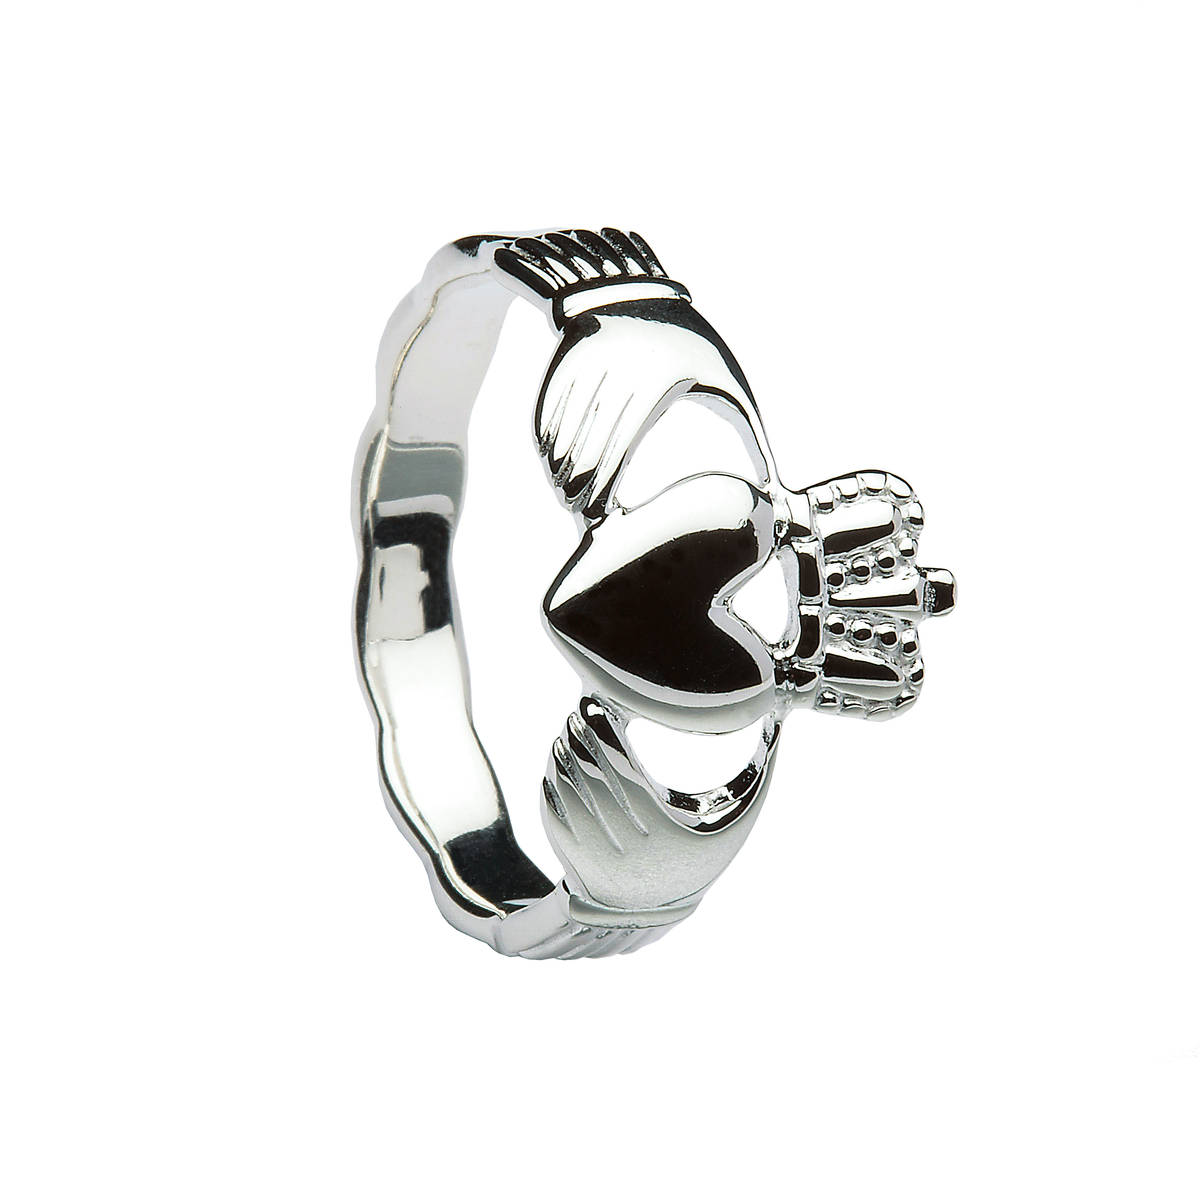 Silver heavy Claddagh ring with braided band.